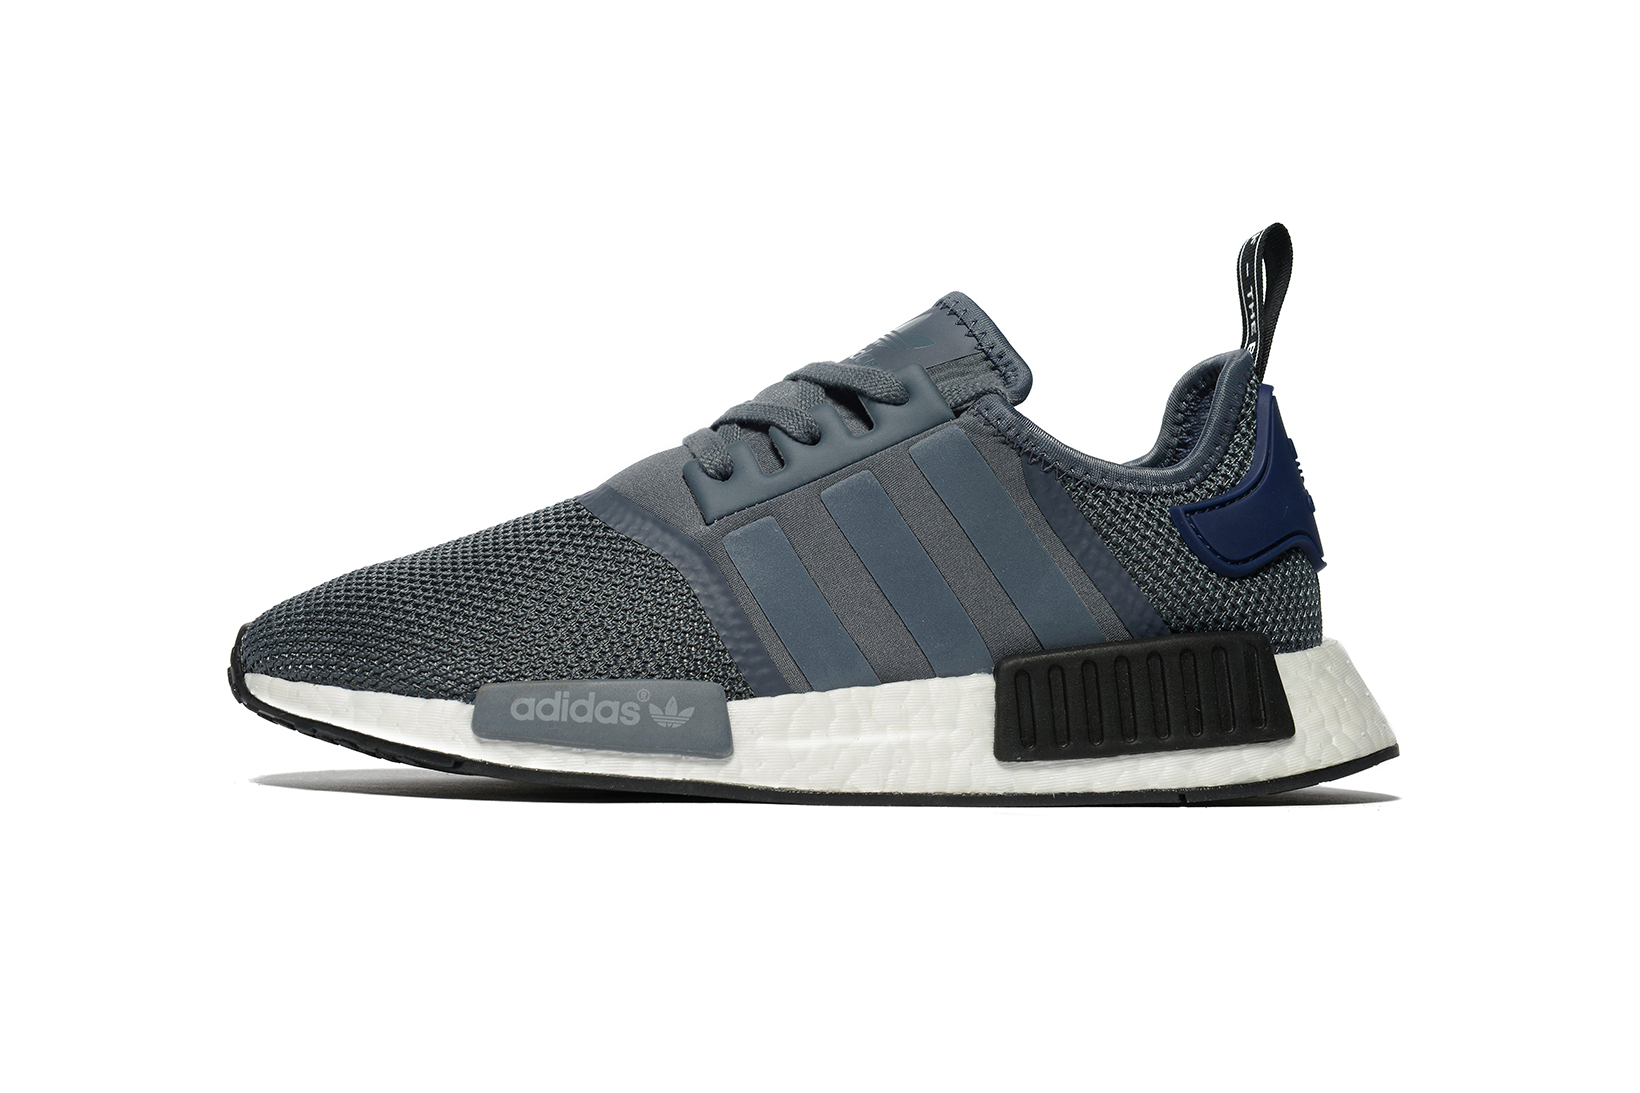 jd sports 39 exclusive adidas originals nmd r1 in grey. Black Bedroom Furniture Sets. Home Design Ideas